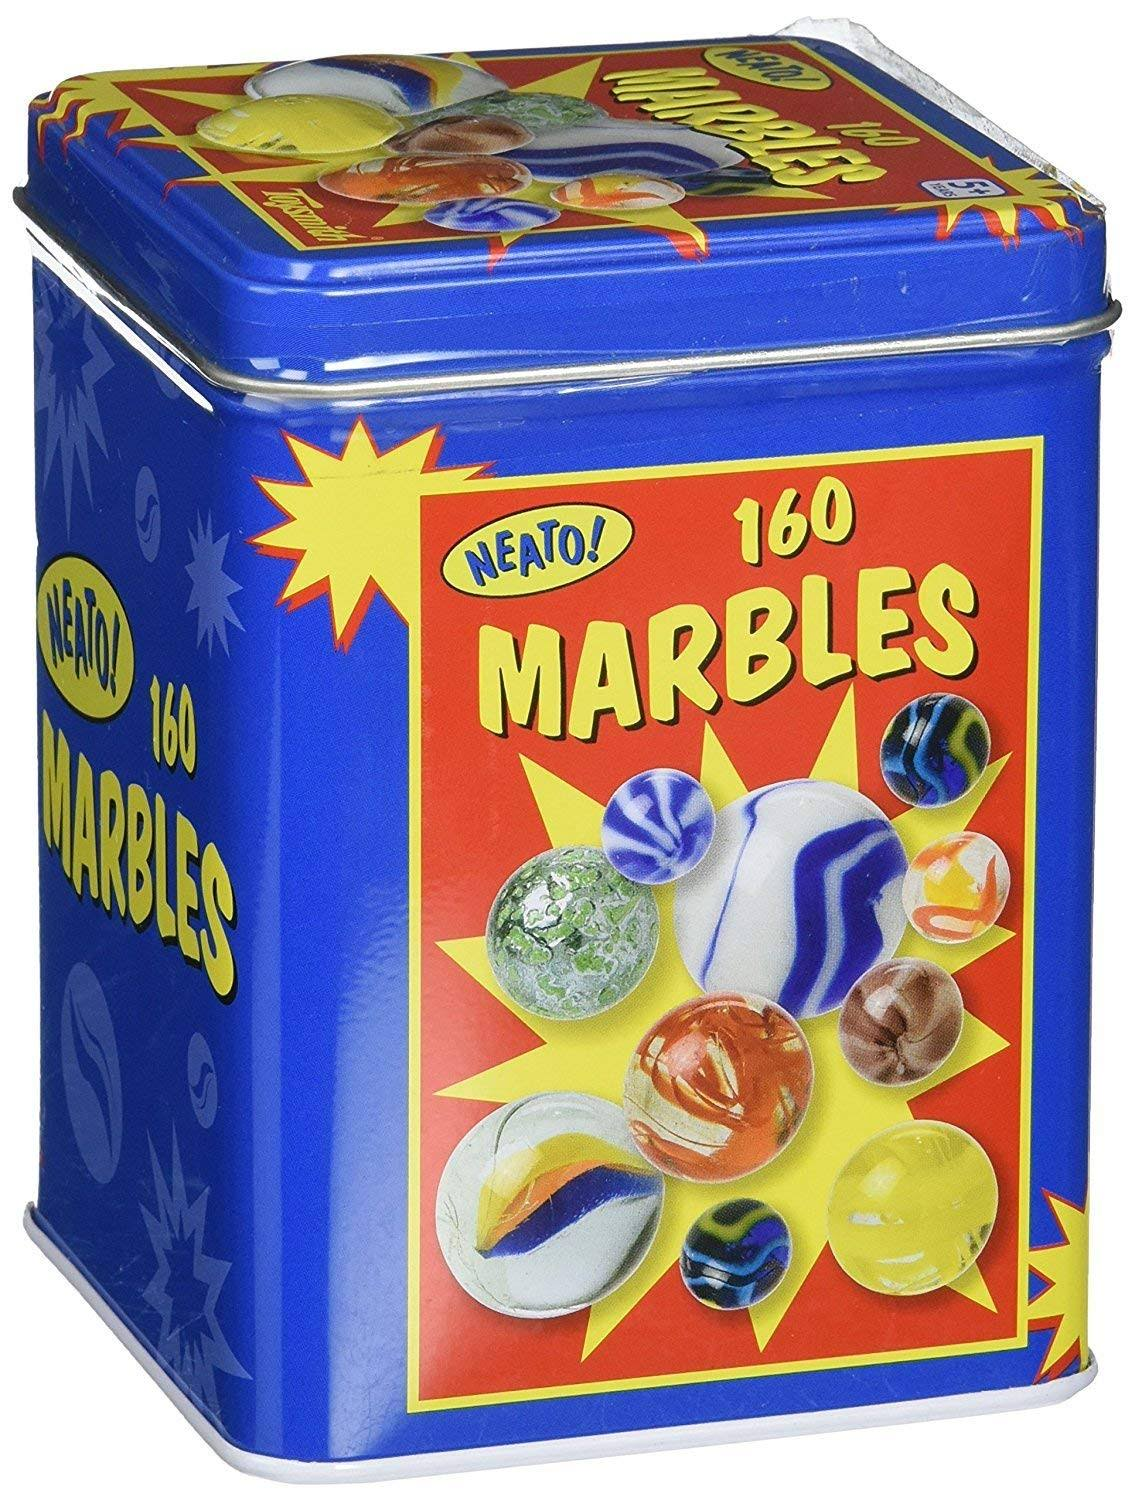 Toysmith Marbles in a Tin Box - 160ct, Multi-colored